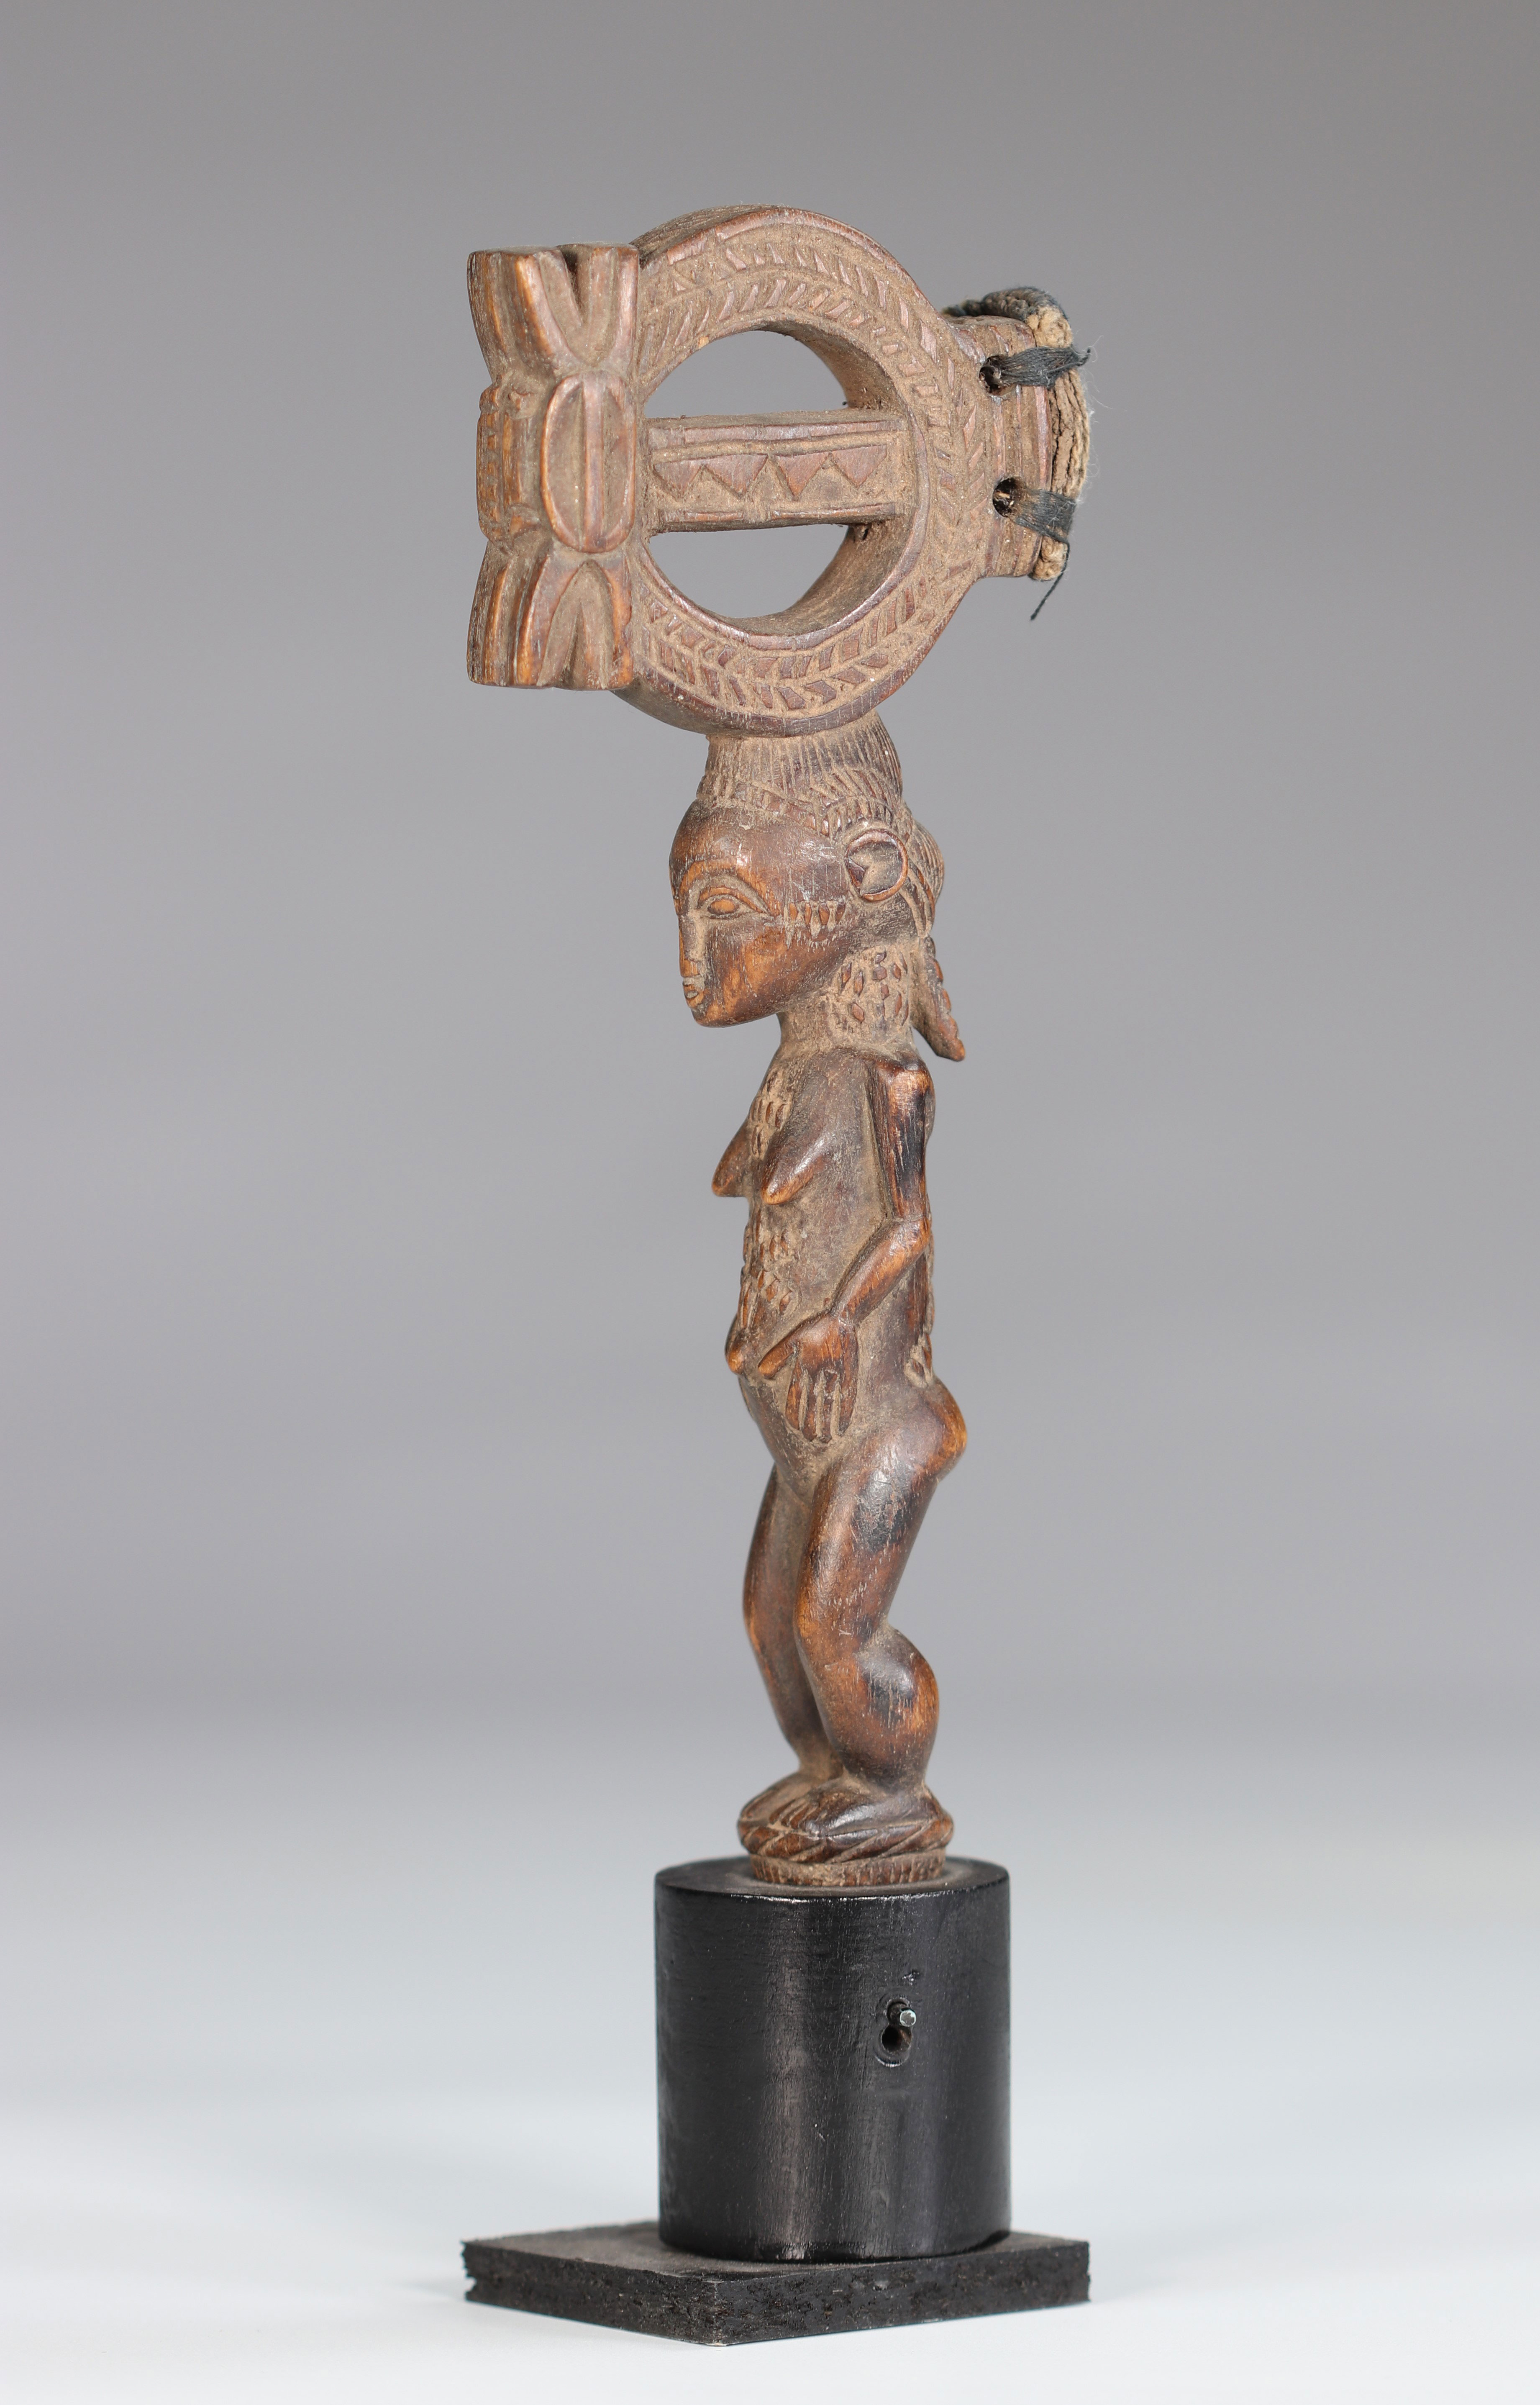 Baoule wooden hammer carved of a female character